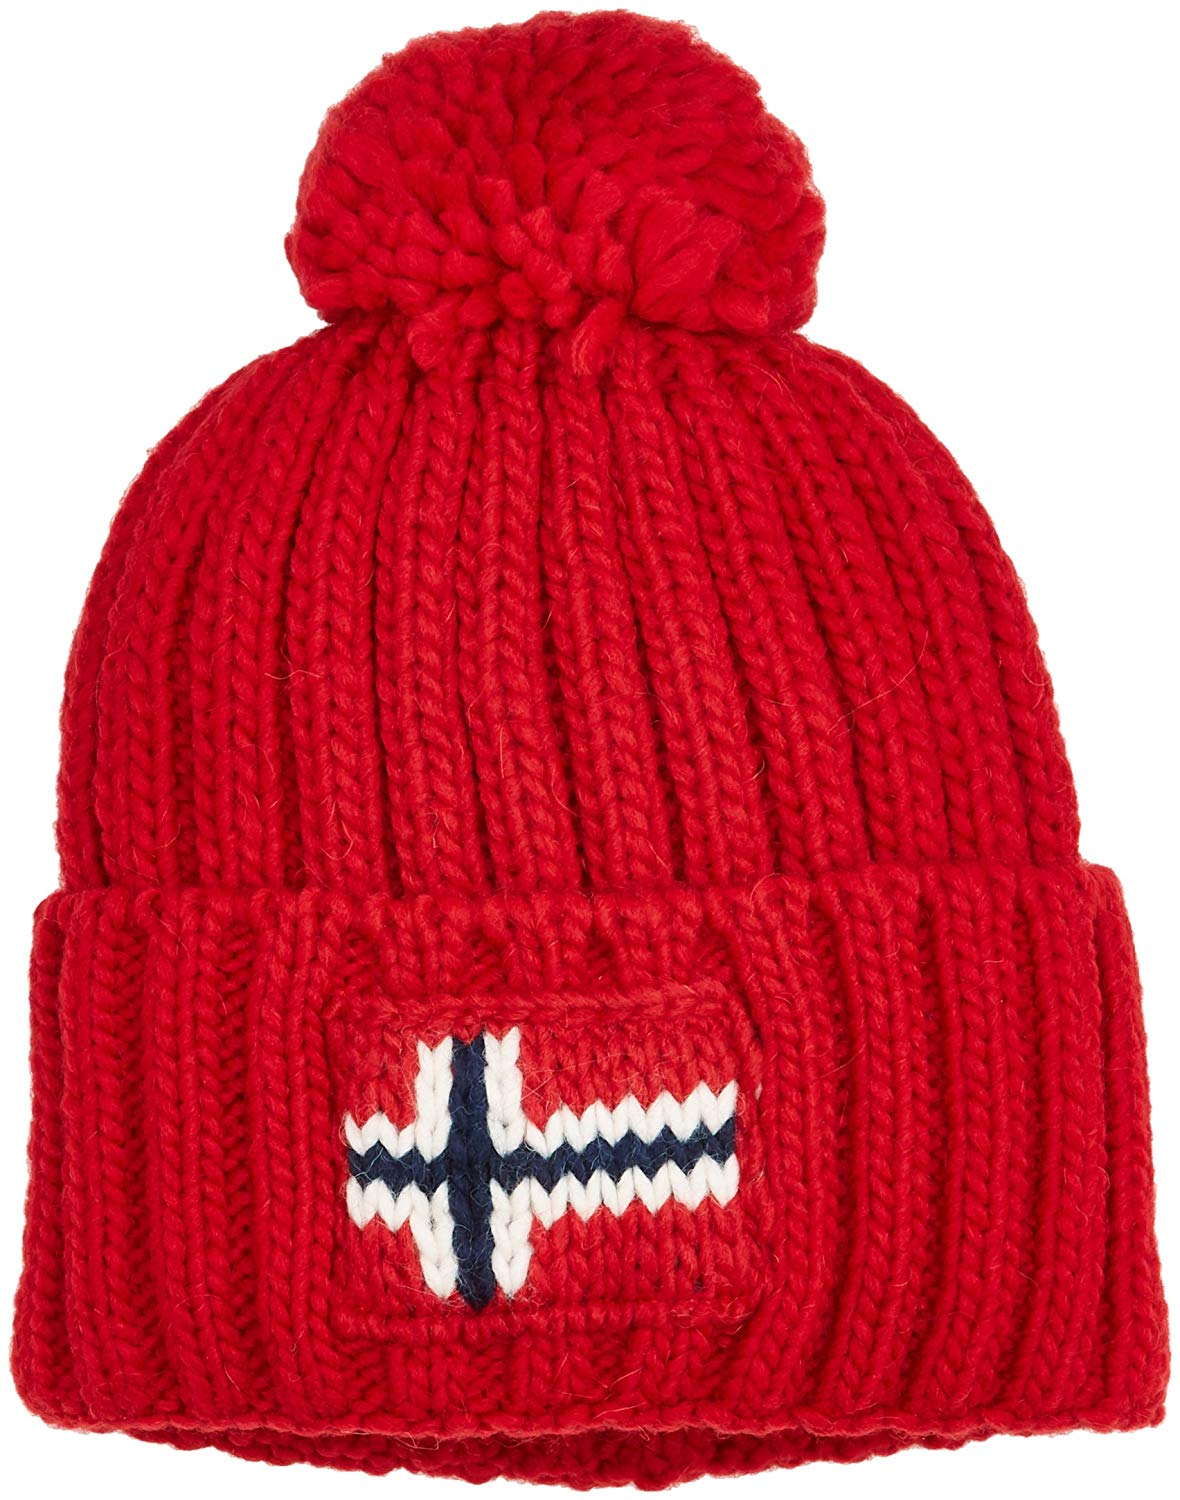 33e40372edd Get Quotations · Napapijri Semiury Bobble Hat in Navy